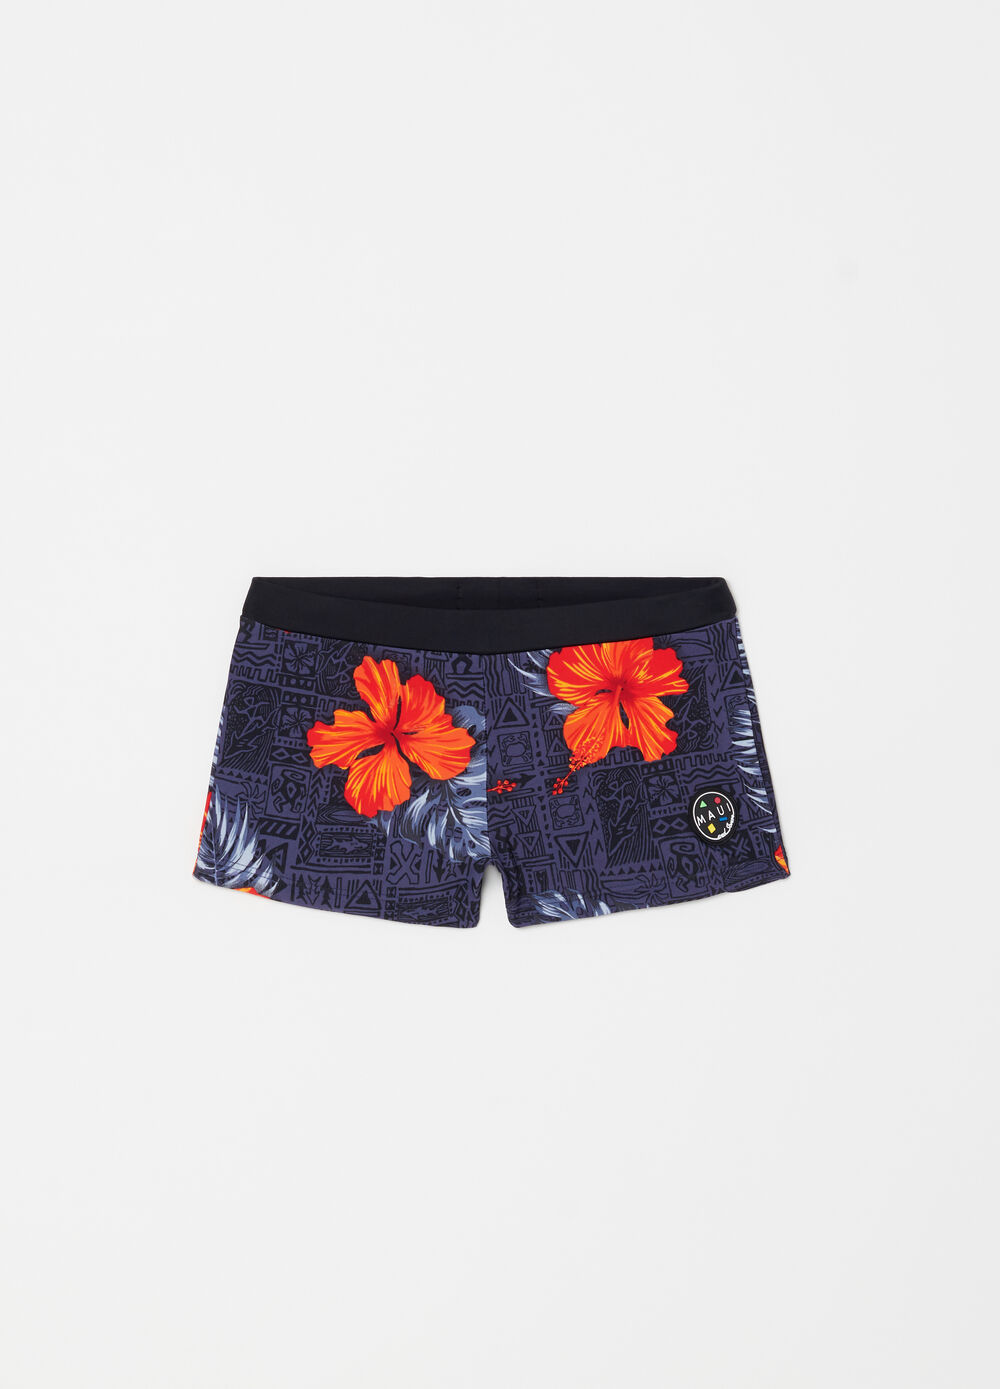 Stretch swim boxer shorts with Maui and Sons patch